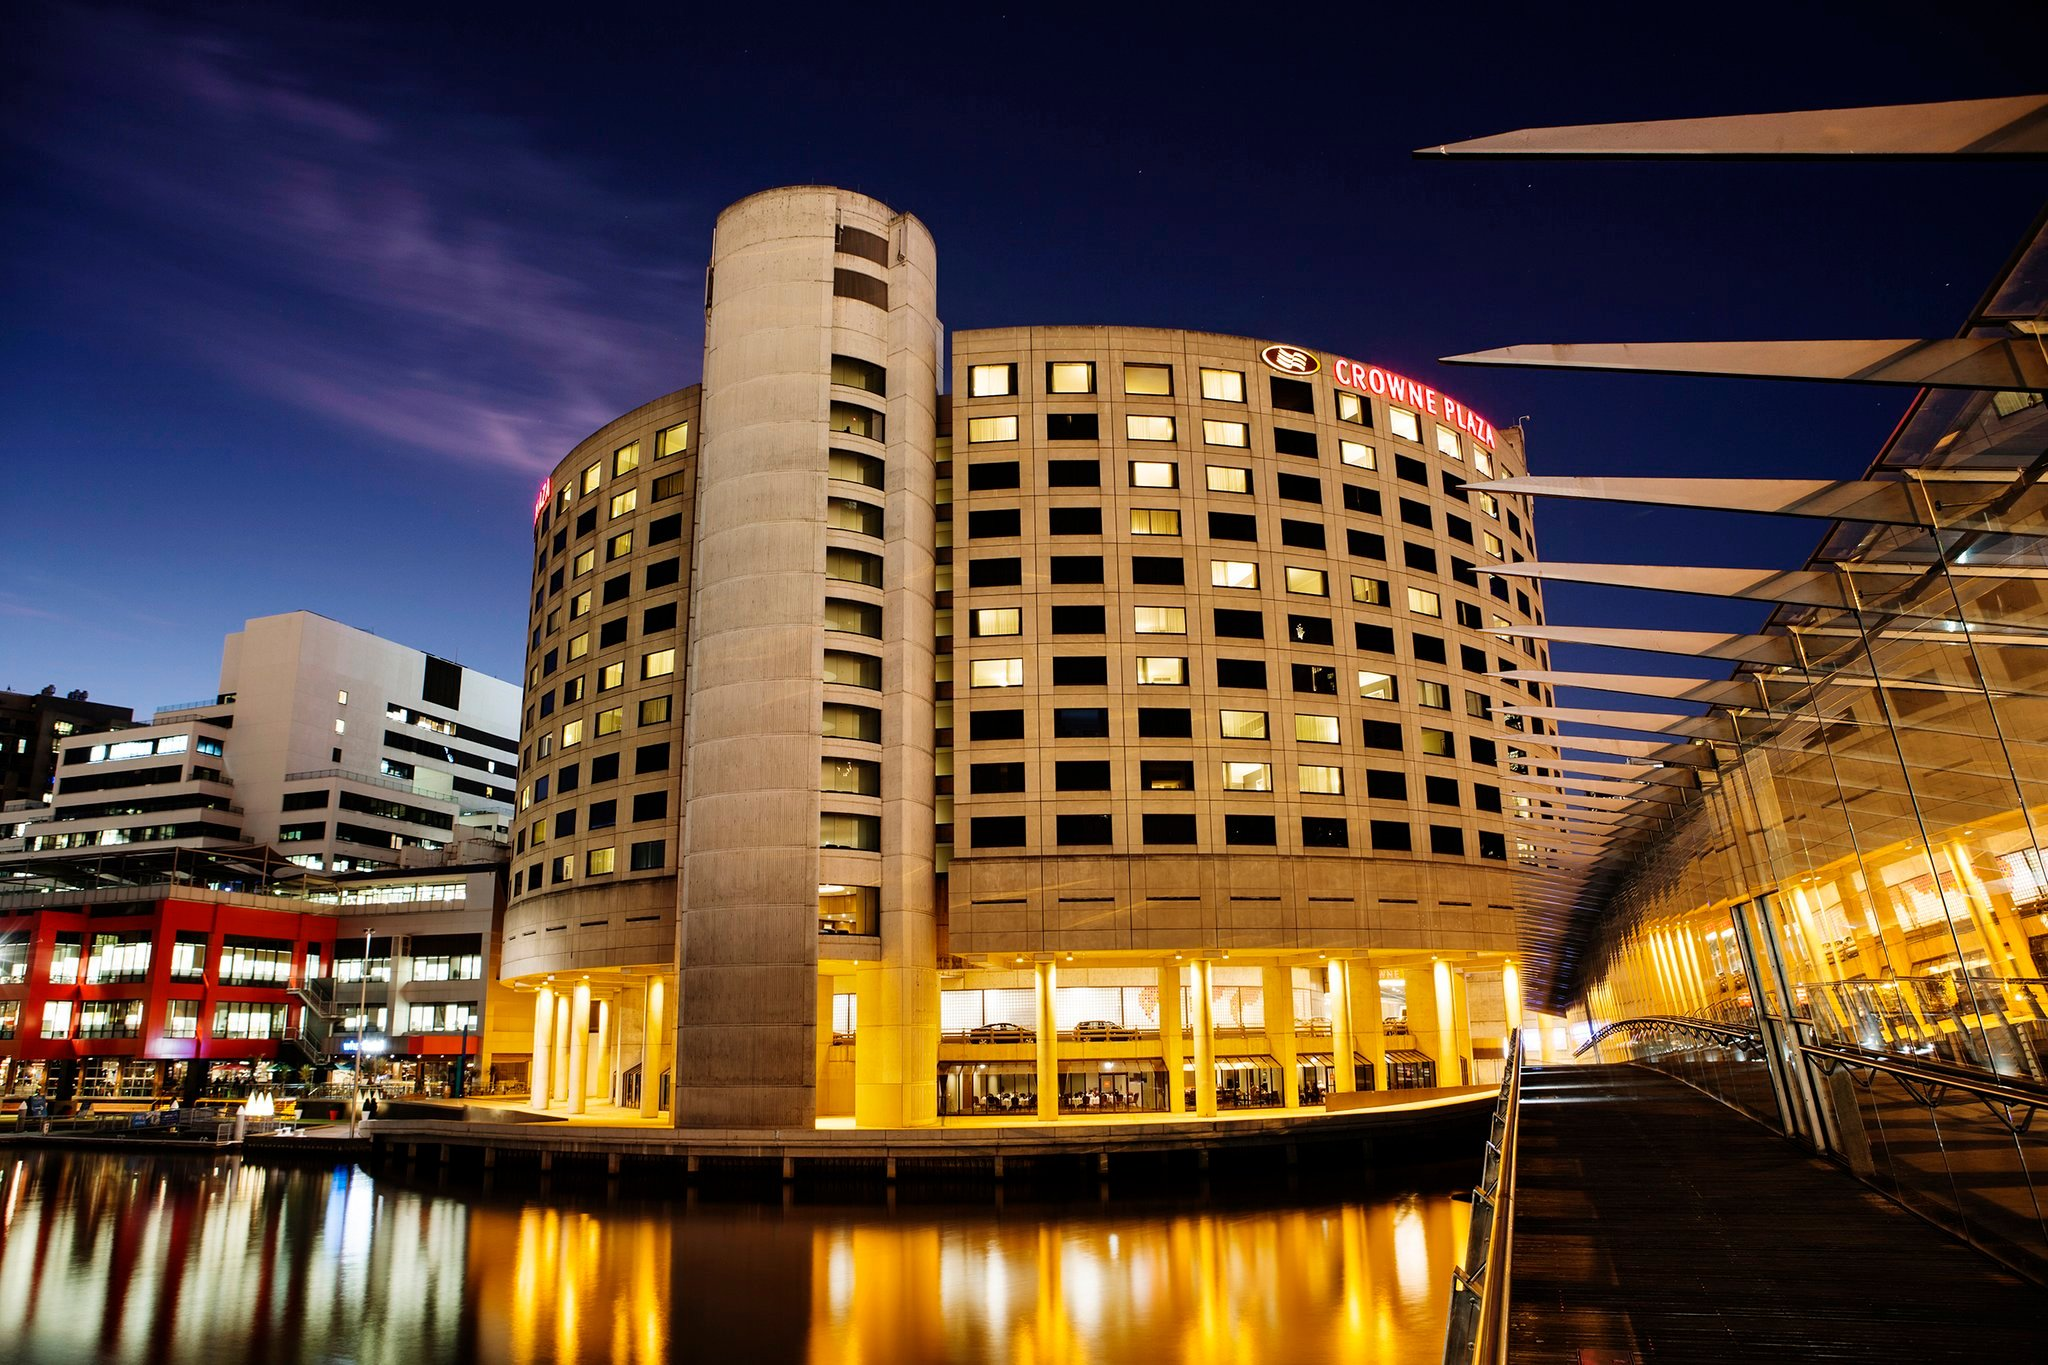 Crowne Plaza Melbourne